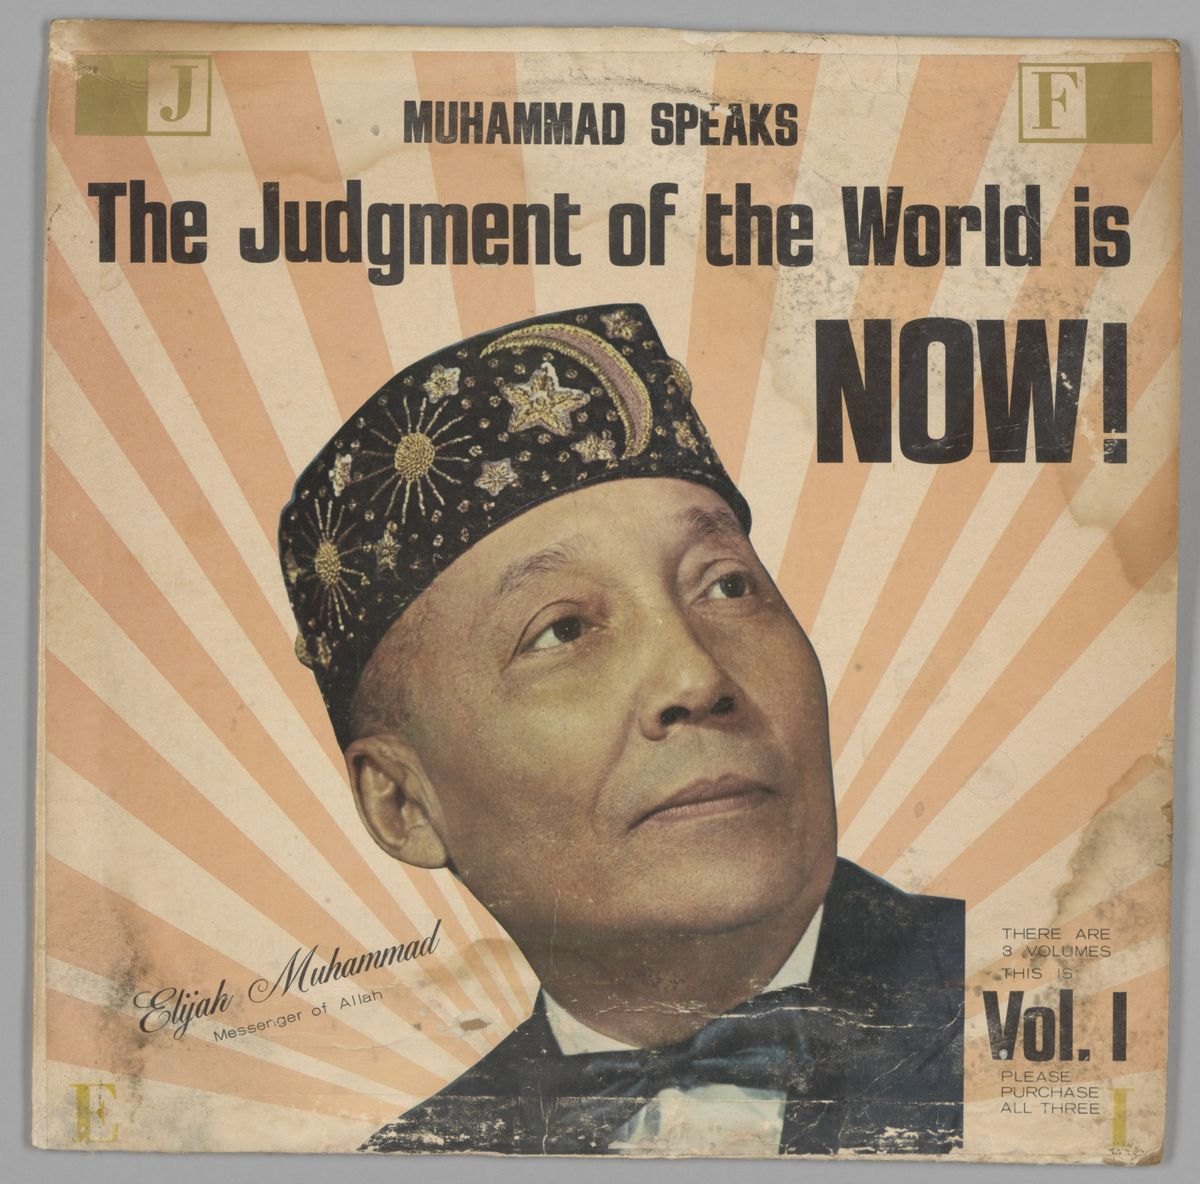 A 1966 recording by Elijah Muhammad.   Collection of the Smithsonian National Museum of African American History and Culture; gift of Malcolm Ali